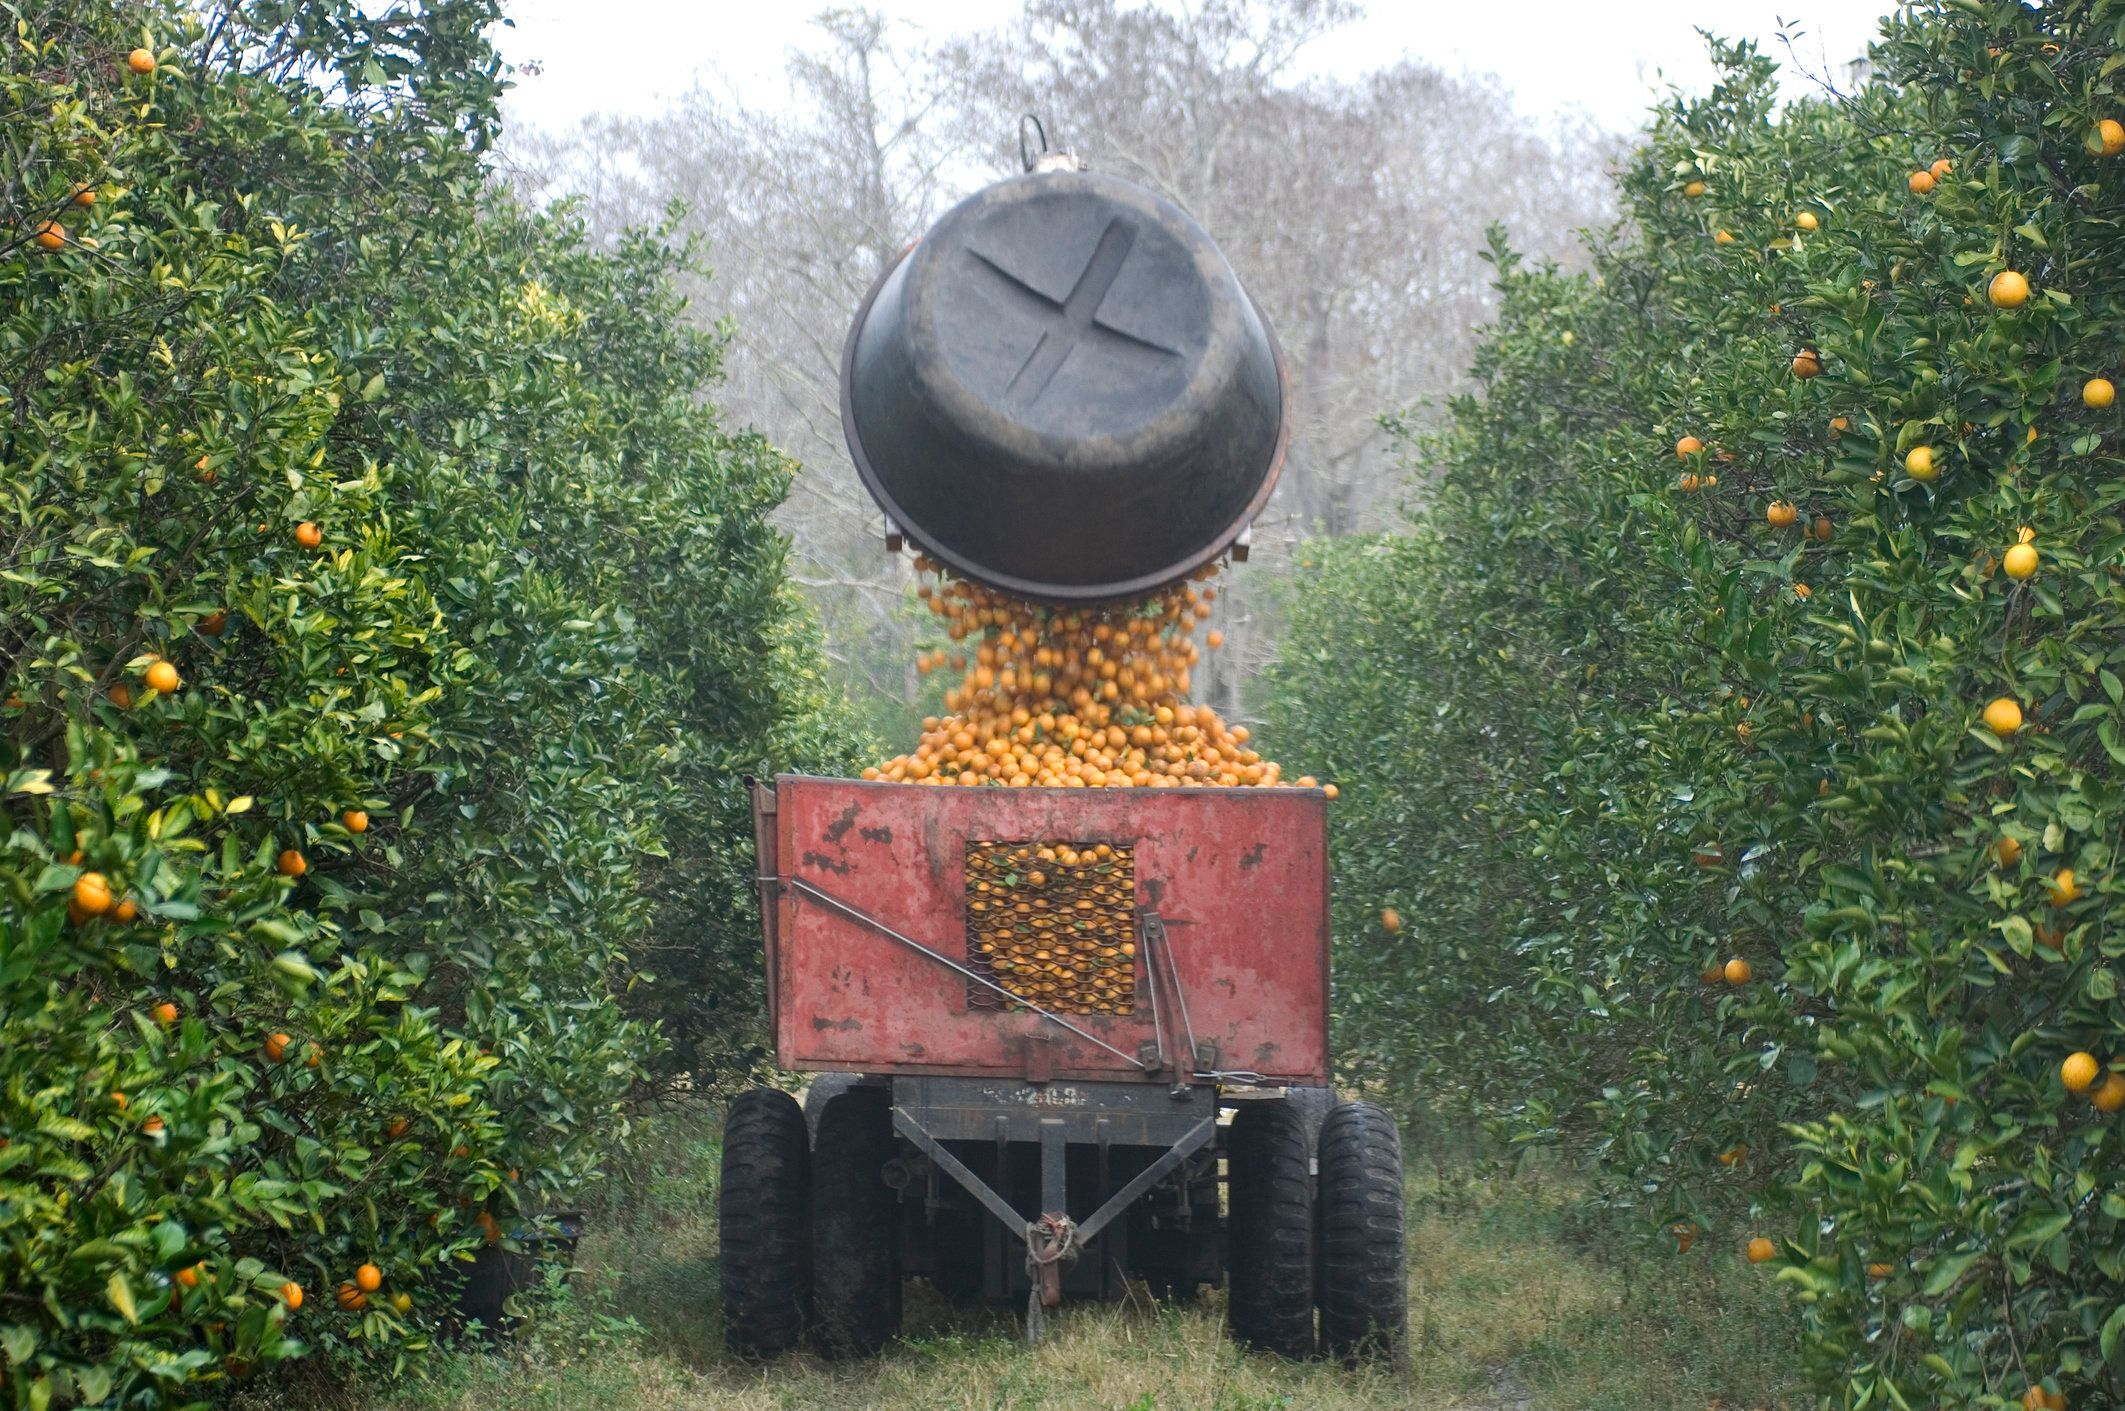 Mechanical truck arm picks up and empties full tubs of picked oranges.